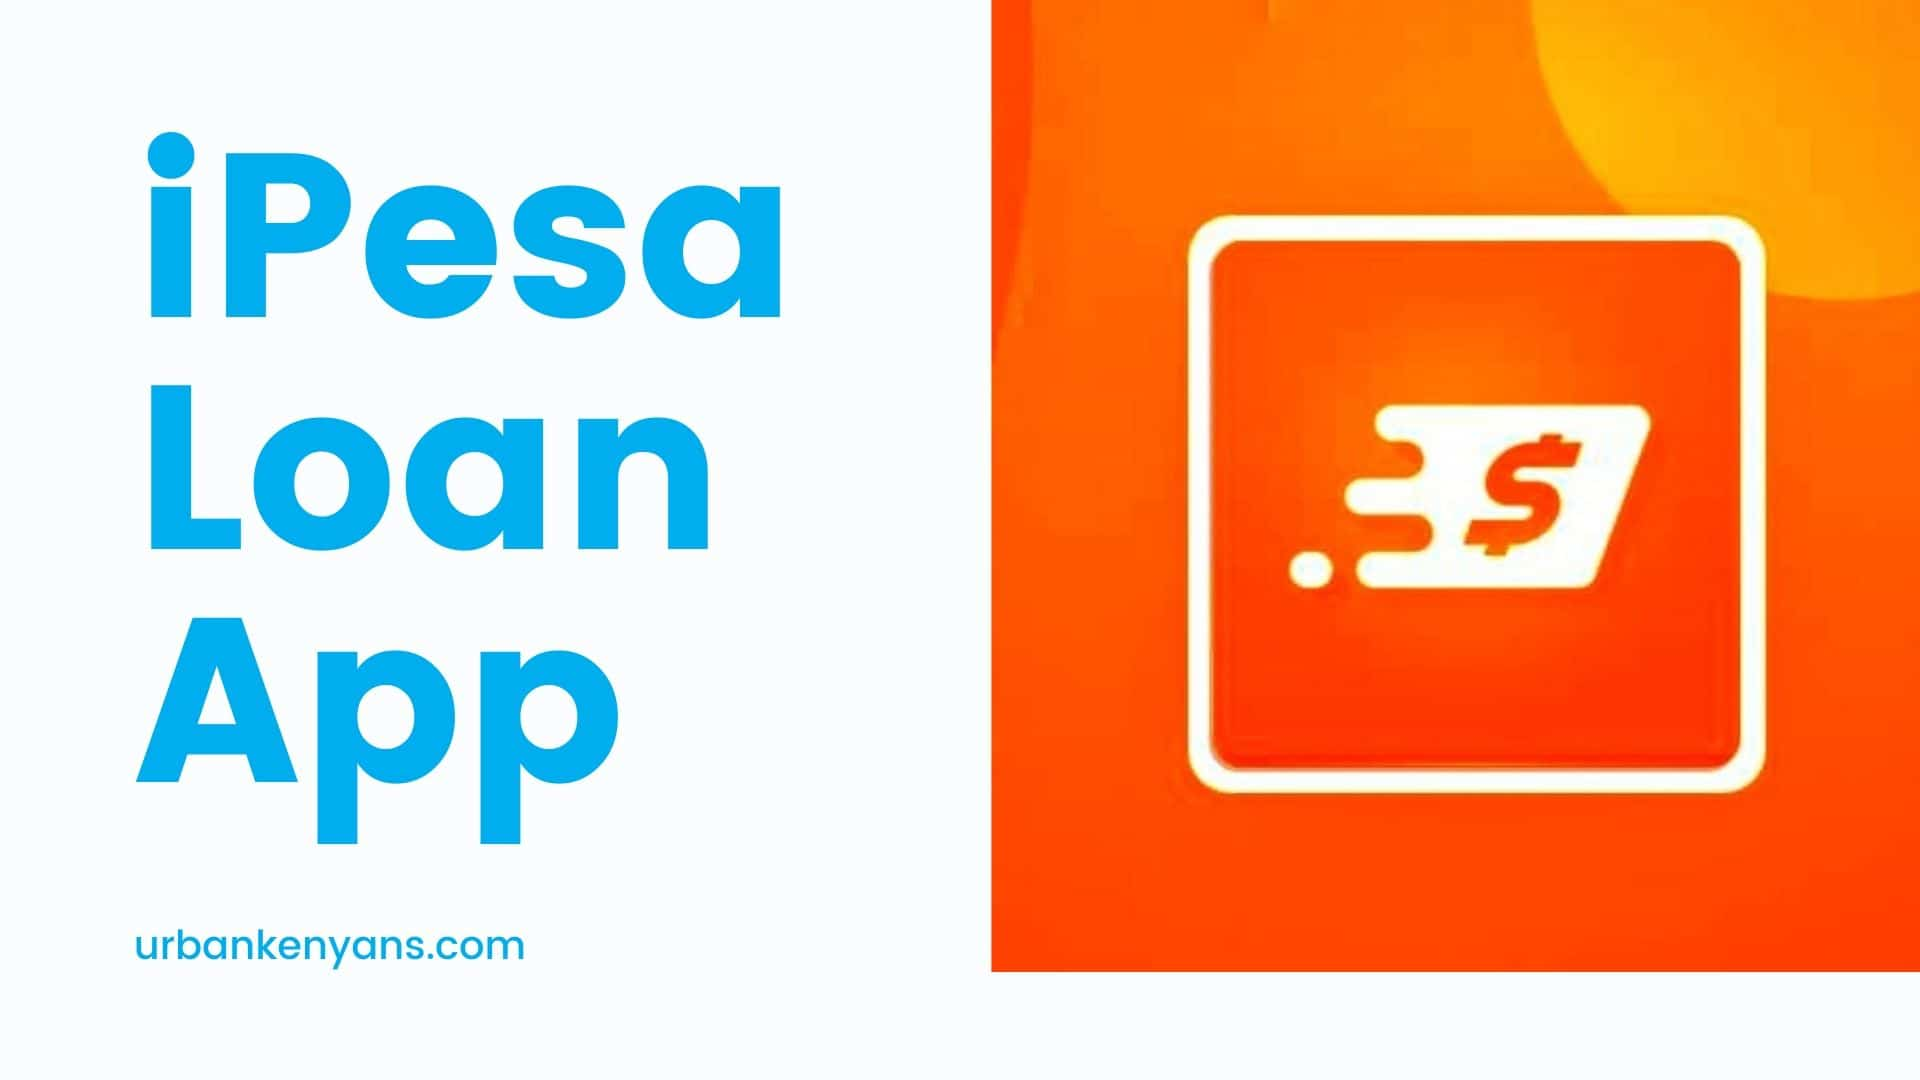 iPesa Loan App Download (2020 Update)